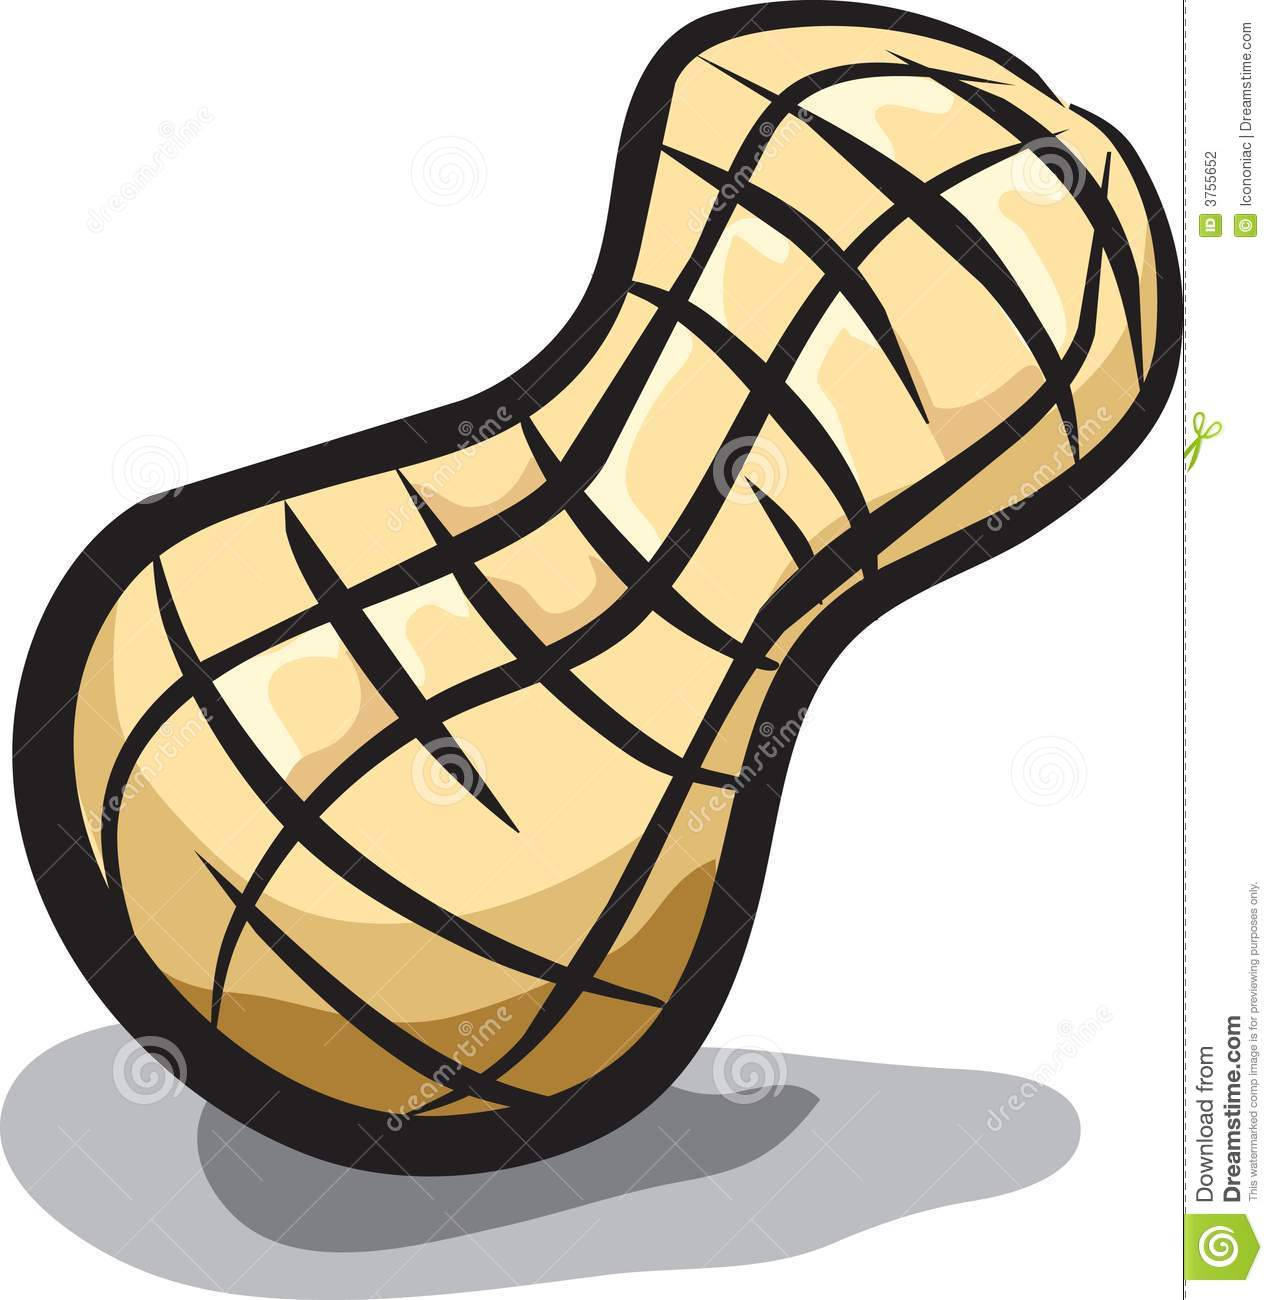 Peanut Butter clipart peanut shell Pictures Free Images Clipart Art